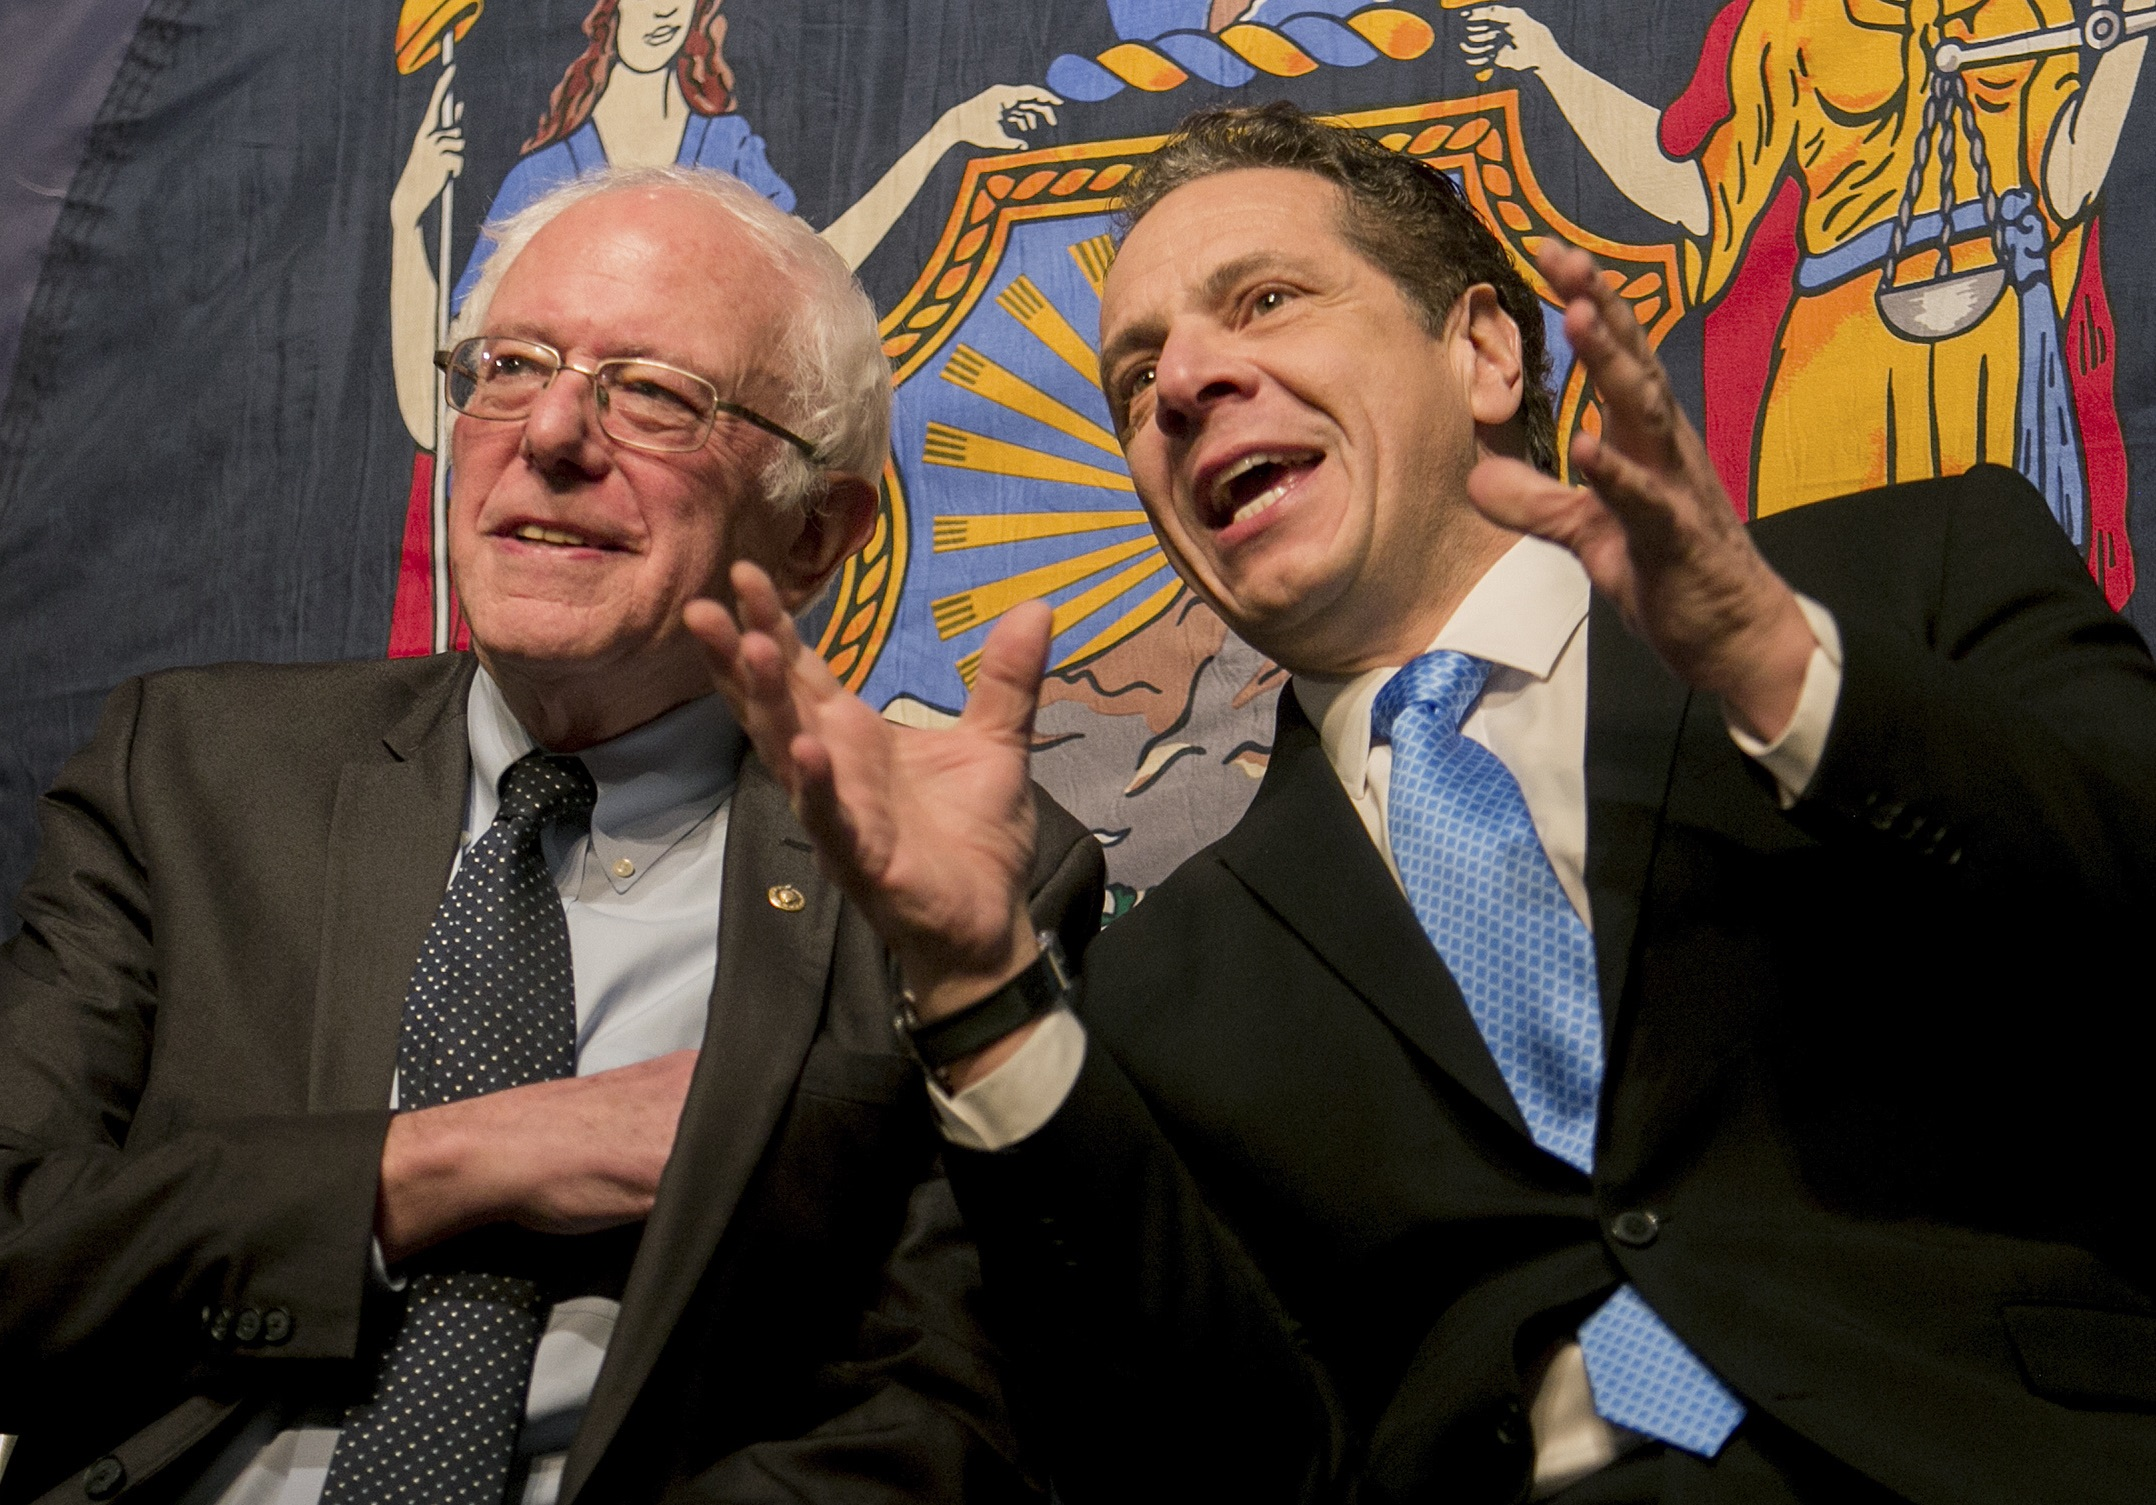 Gov. Andrew Cuomo, right, unveiled his plan for free SUNY tuition at an event with Vermont Sen. Bernie Sanders. (New York Times photo)